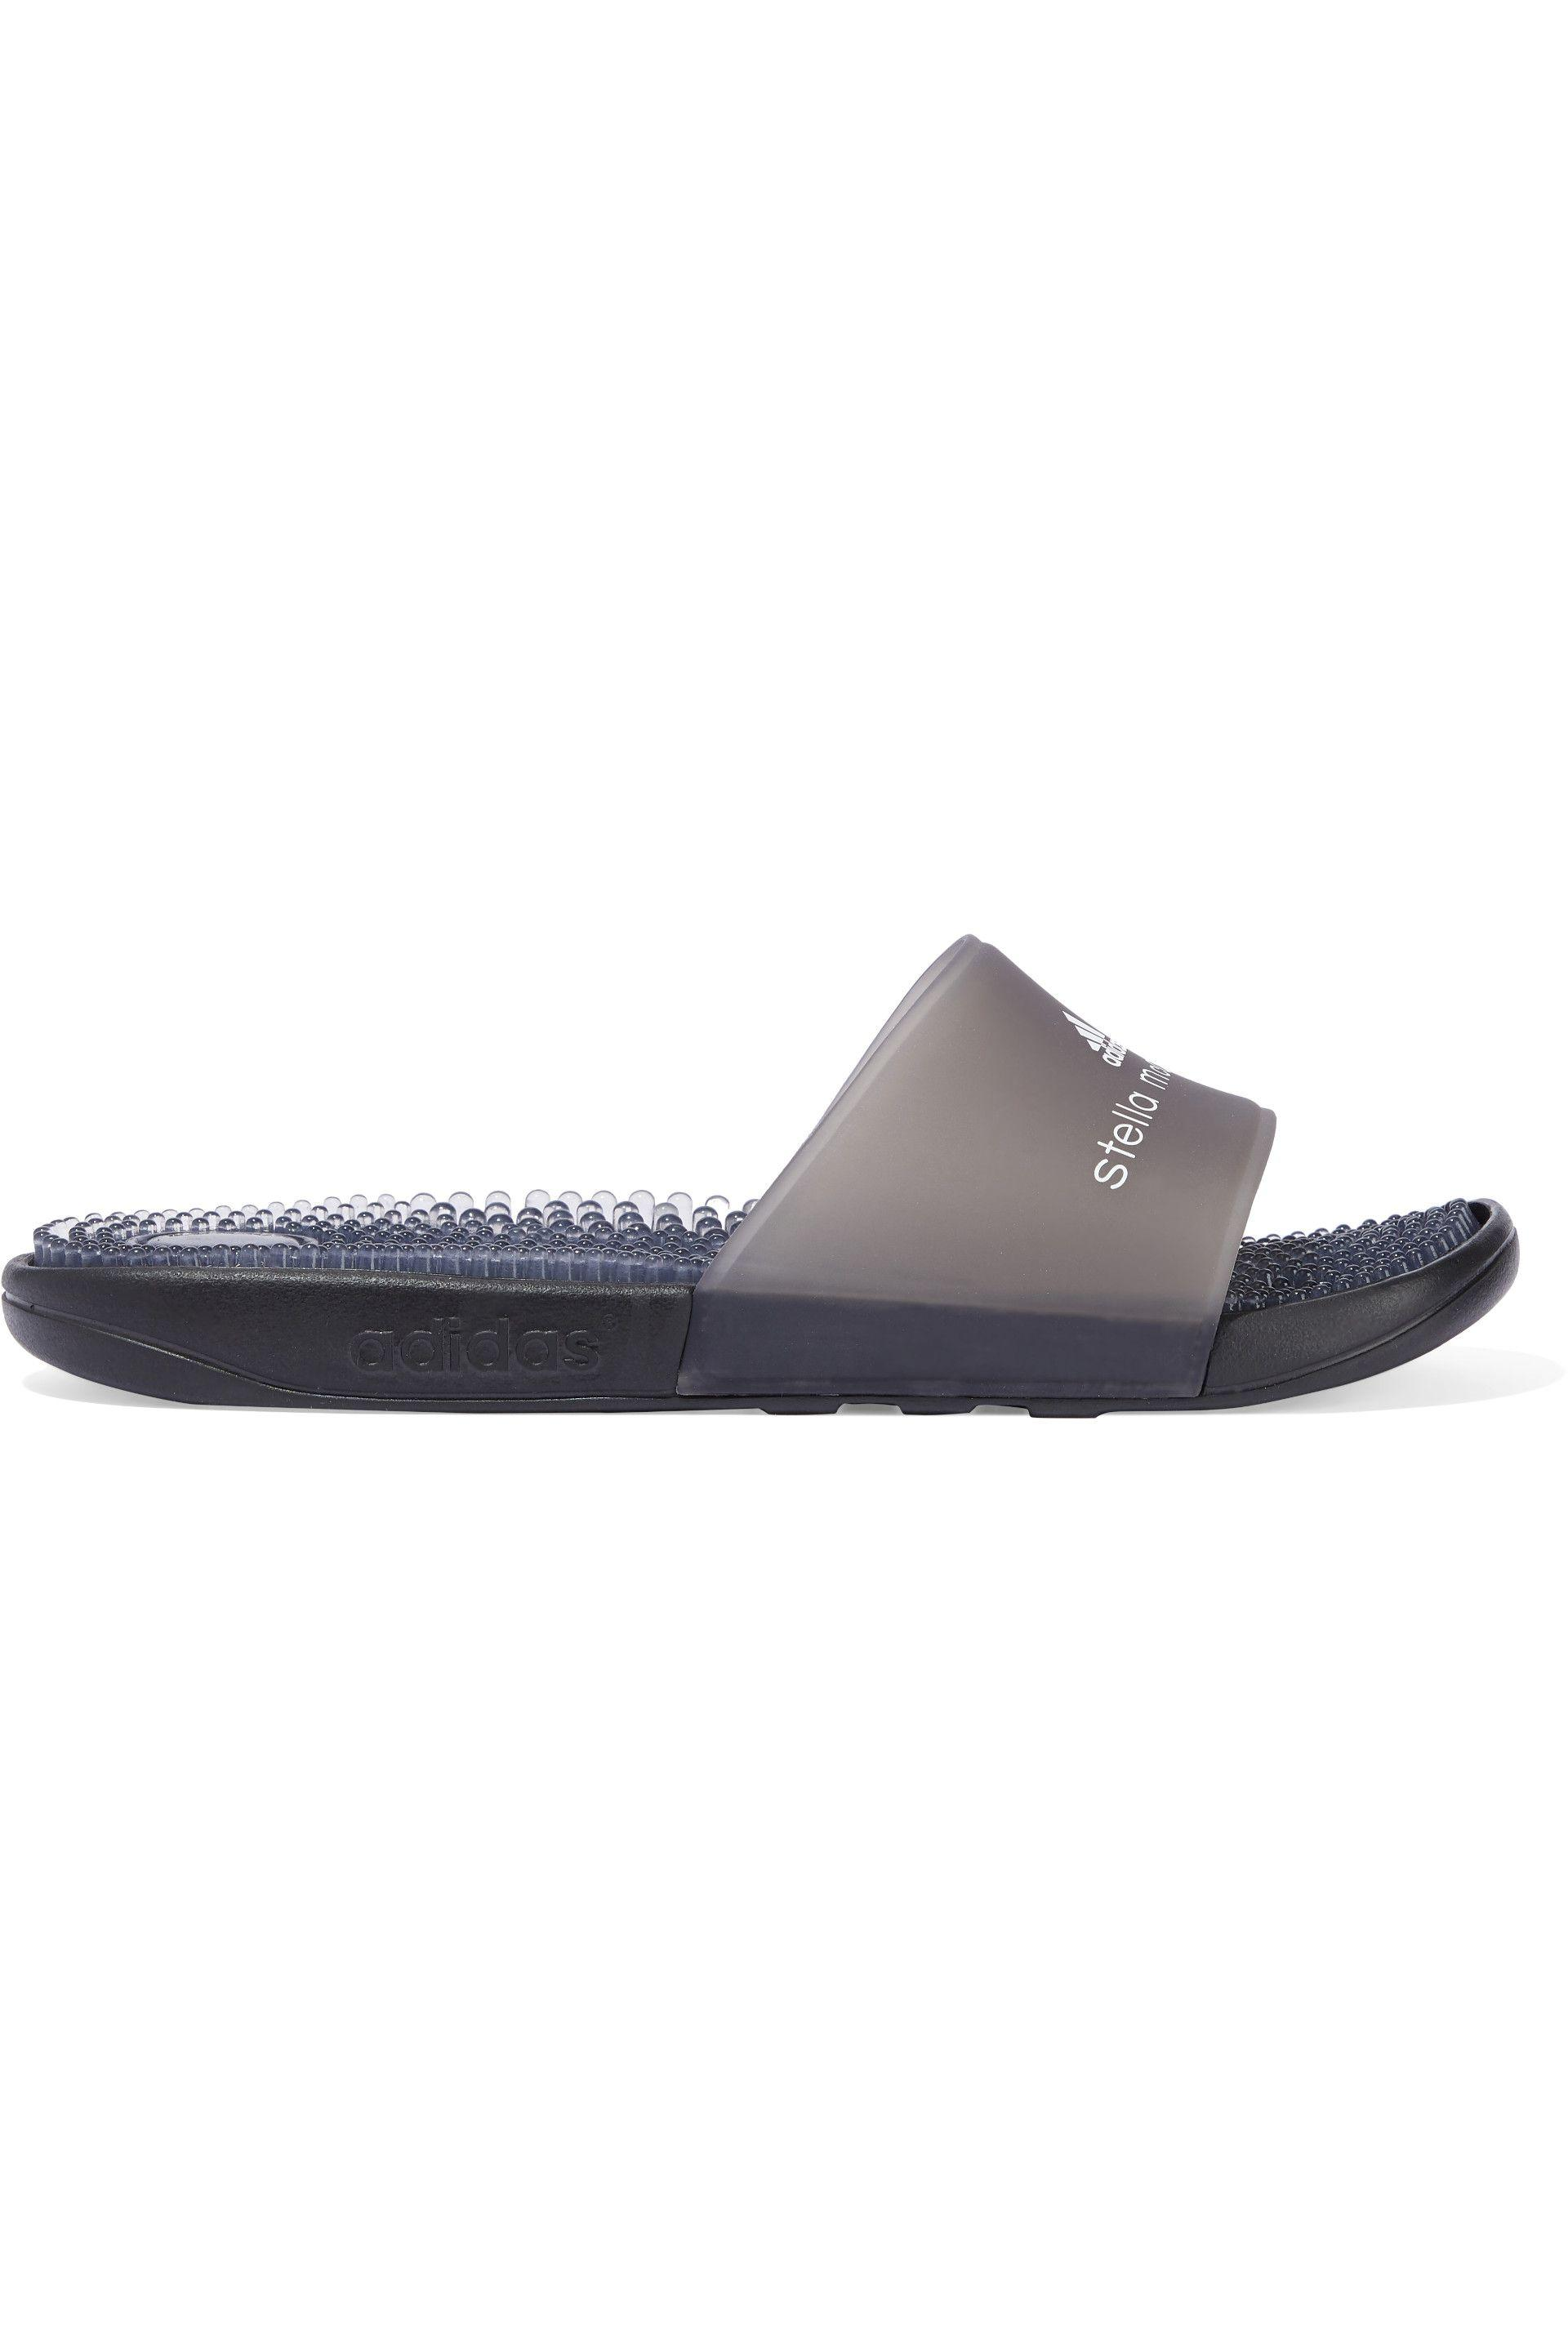 99927591aa7a adidas By Stella McCartney. Women s Woman + Stella Mccartney Adissage  Printed Rubber Slides Anthracite